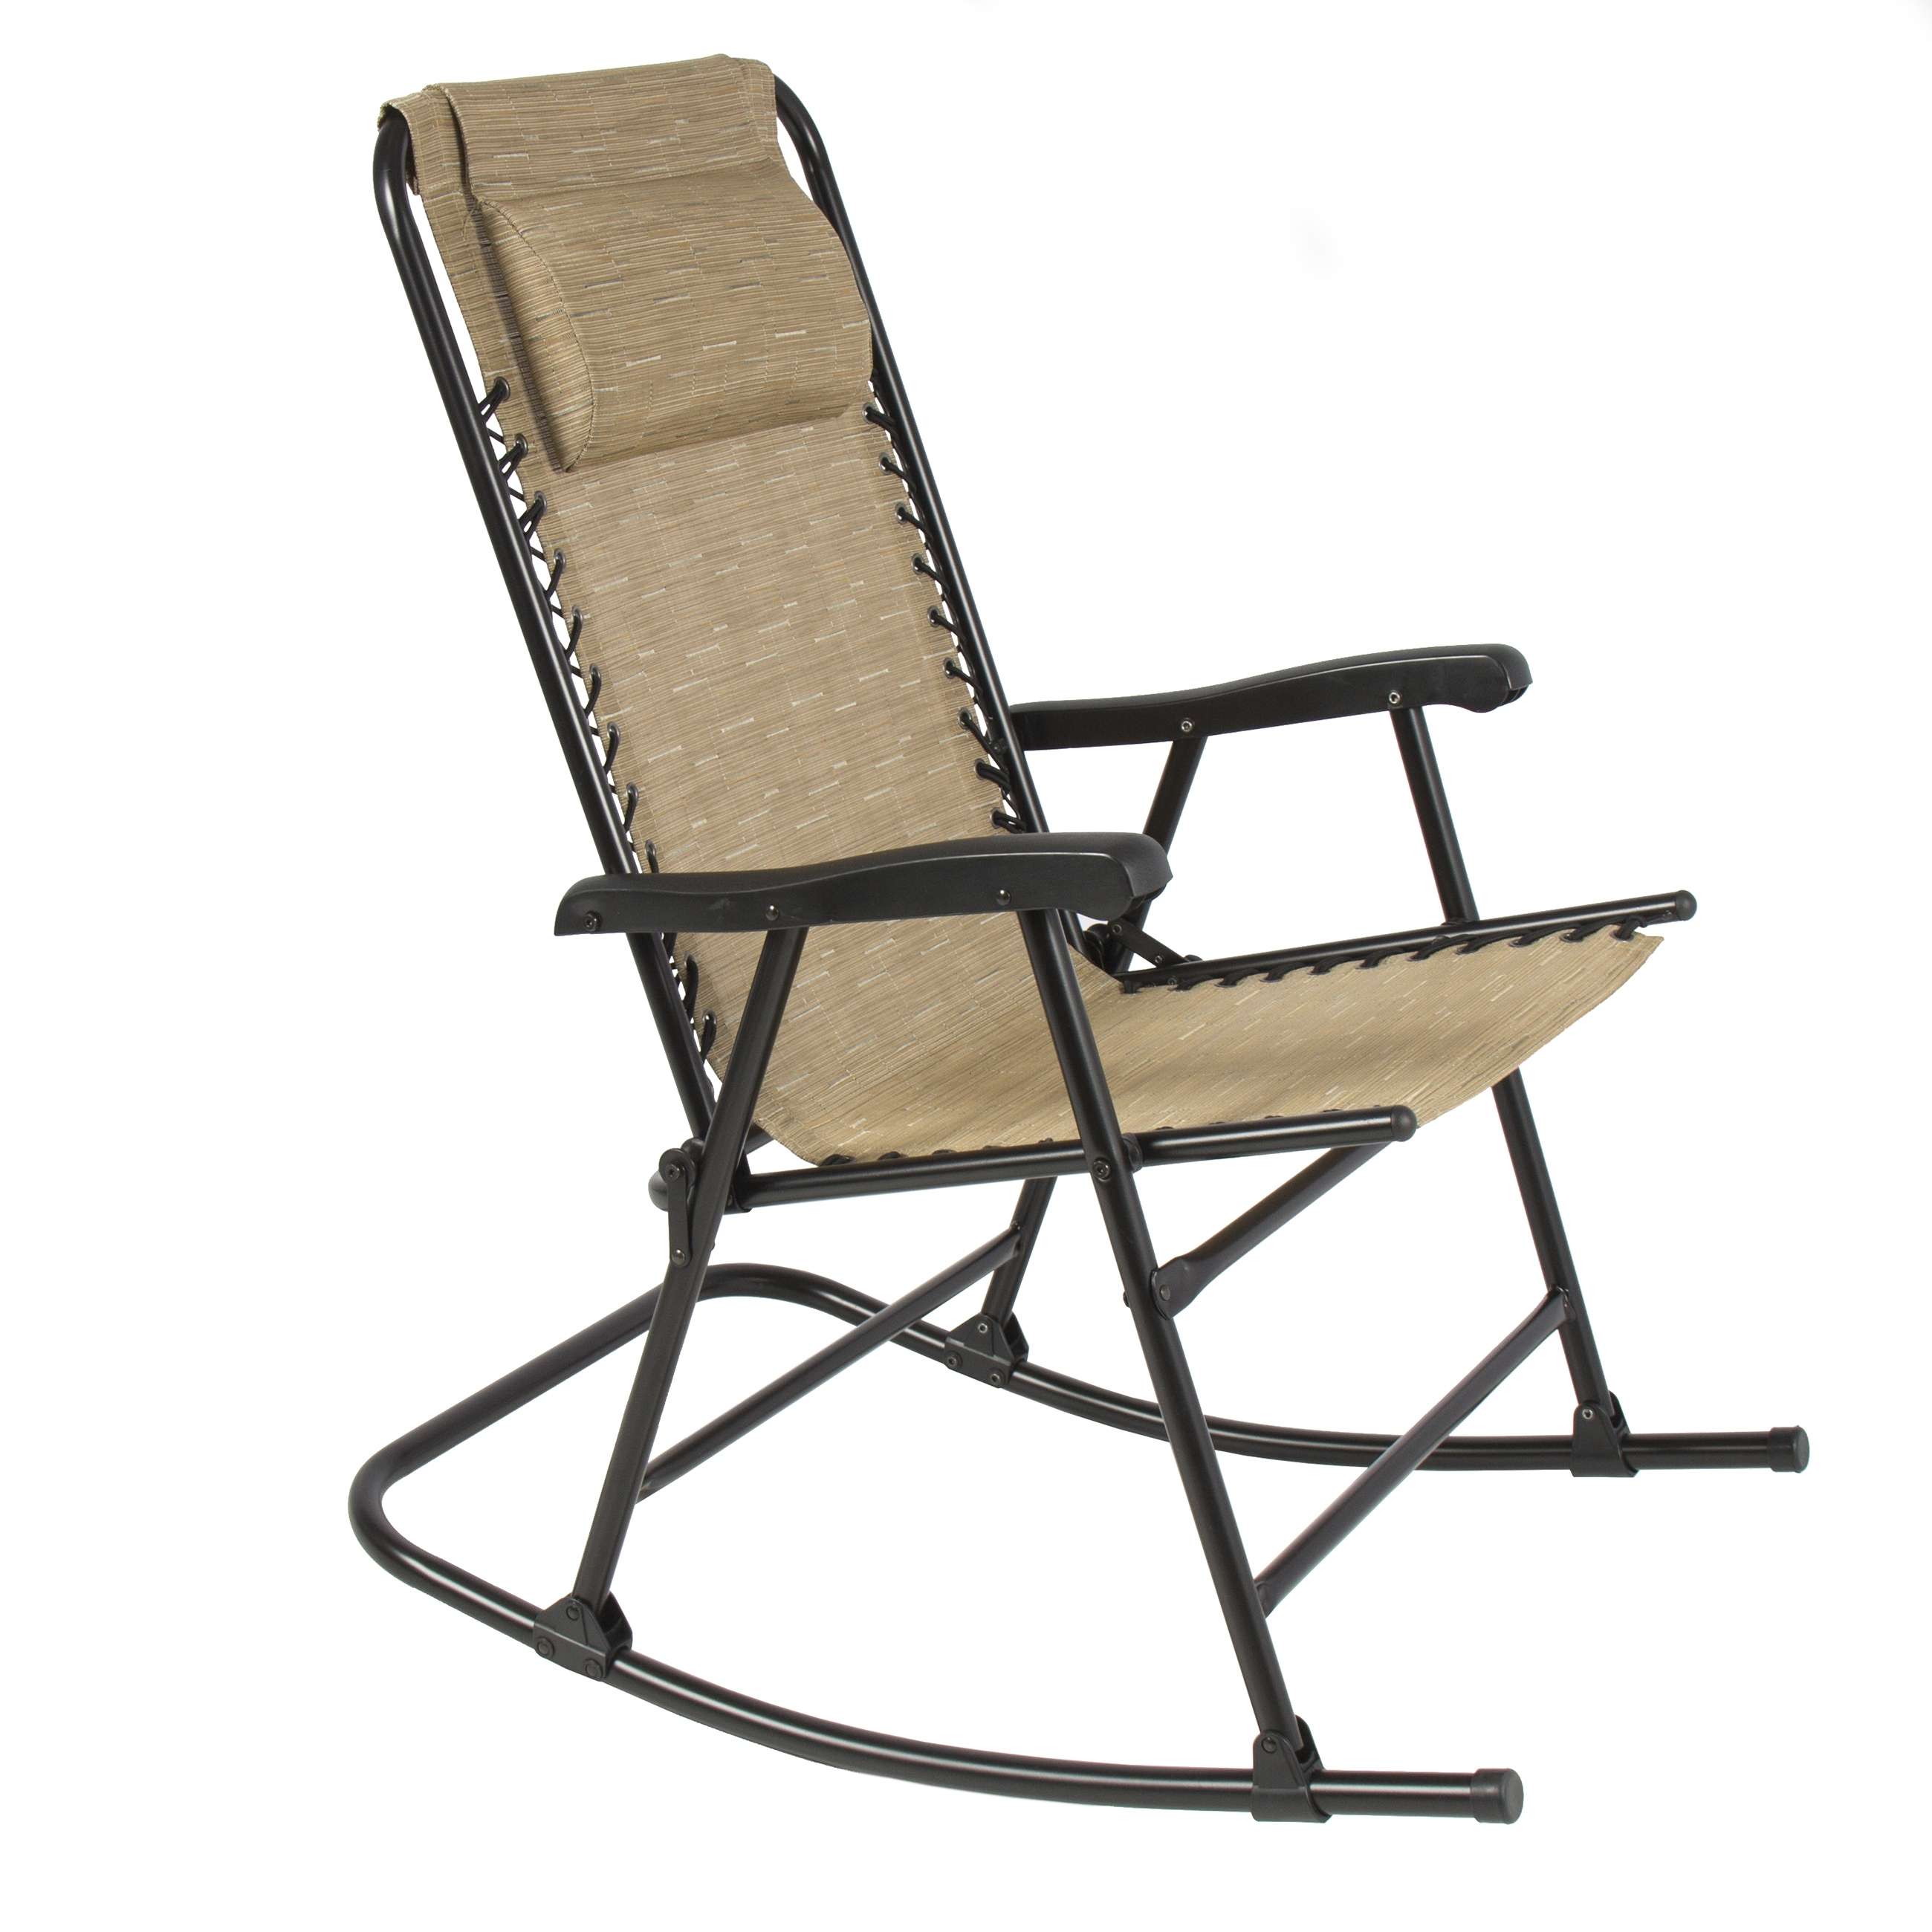 Outdoor Patio Metal Rocking Chairs In Well Known Folding Rocking Chair Foldable Rocker Outdoor Patio Furniture Beige (View 7 of 15)